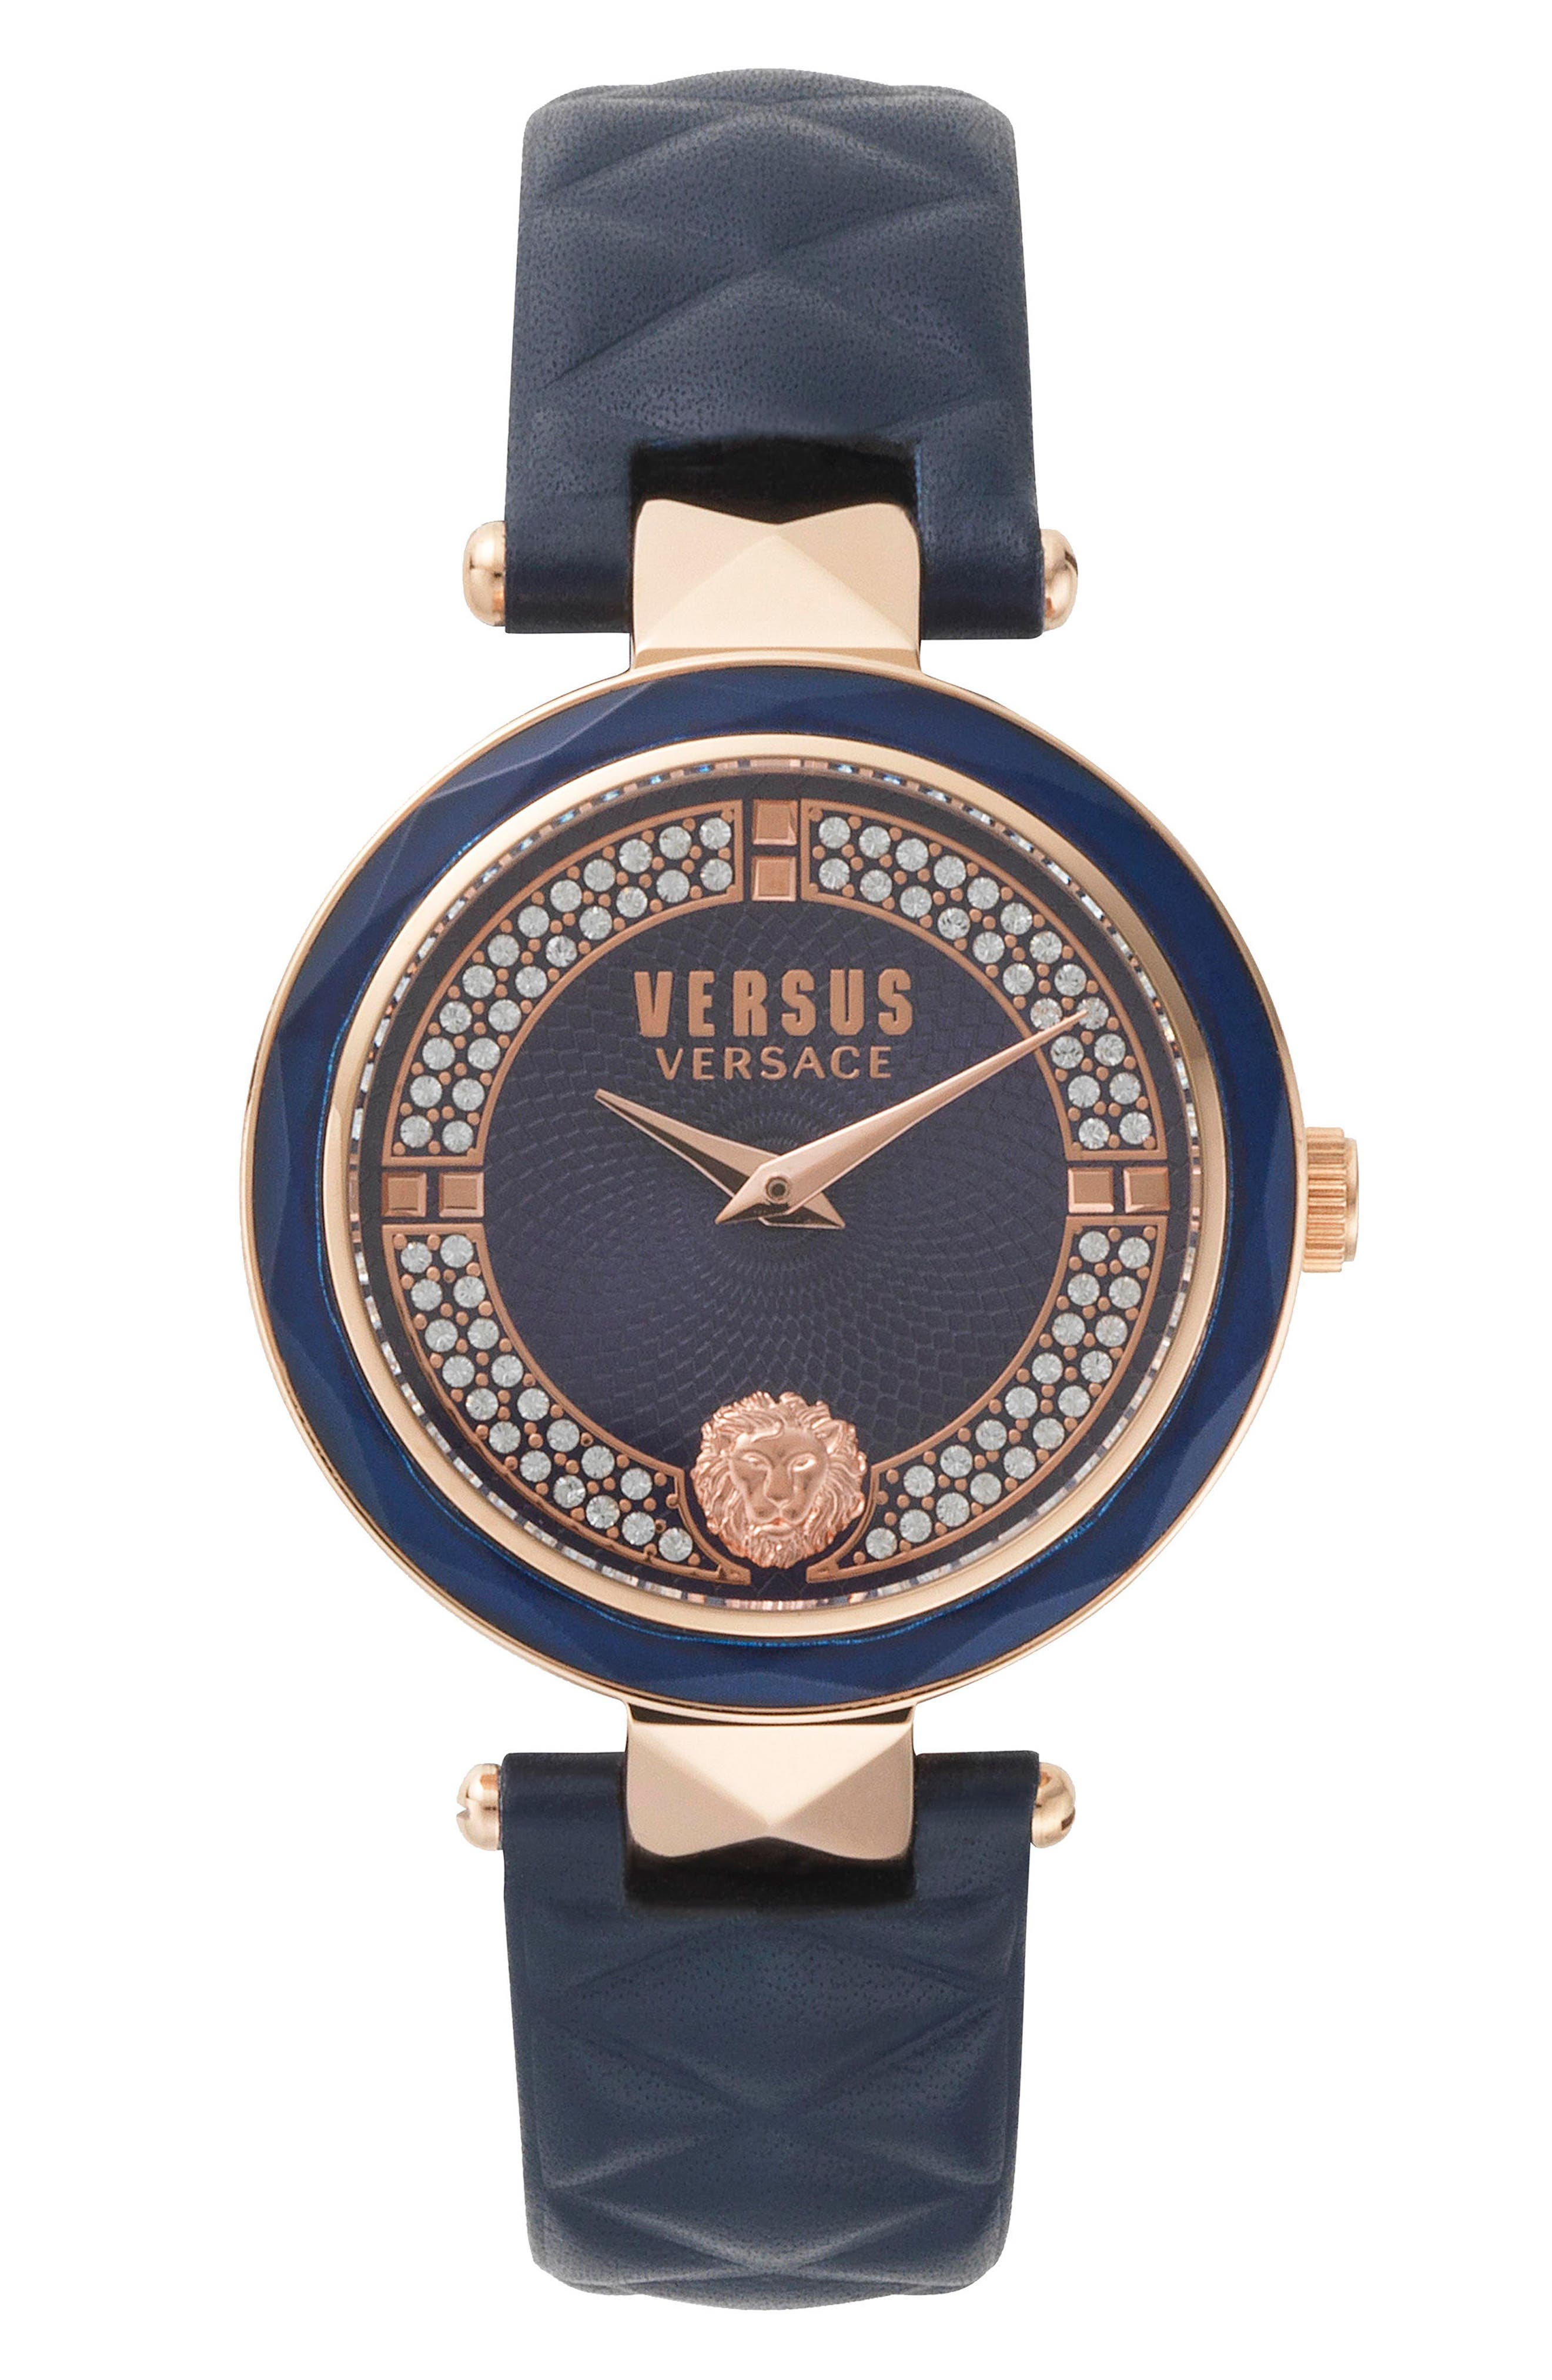 VERSUS VERSACE Covent Garden Crystal Accent Leather Strap Watch, 36mm, Main, color, BLUE/ ROSE GOLD